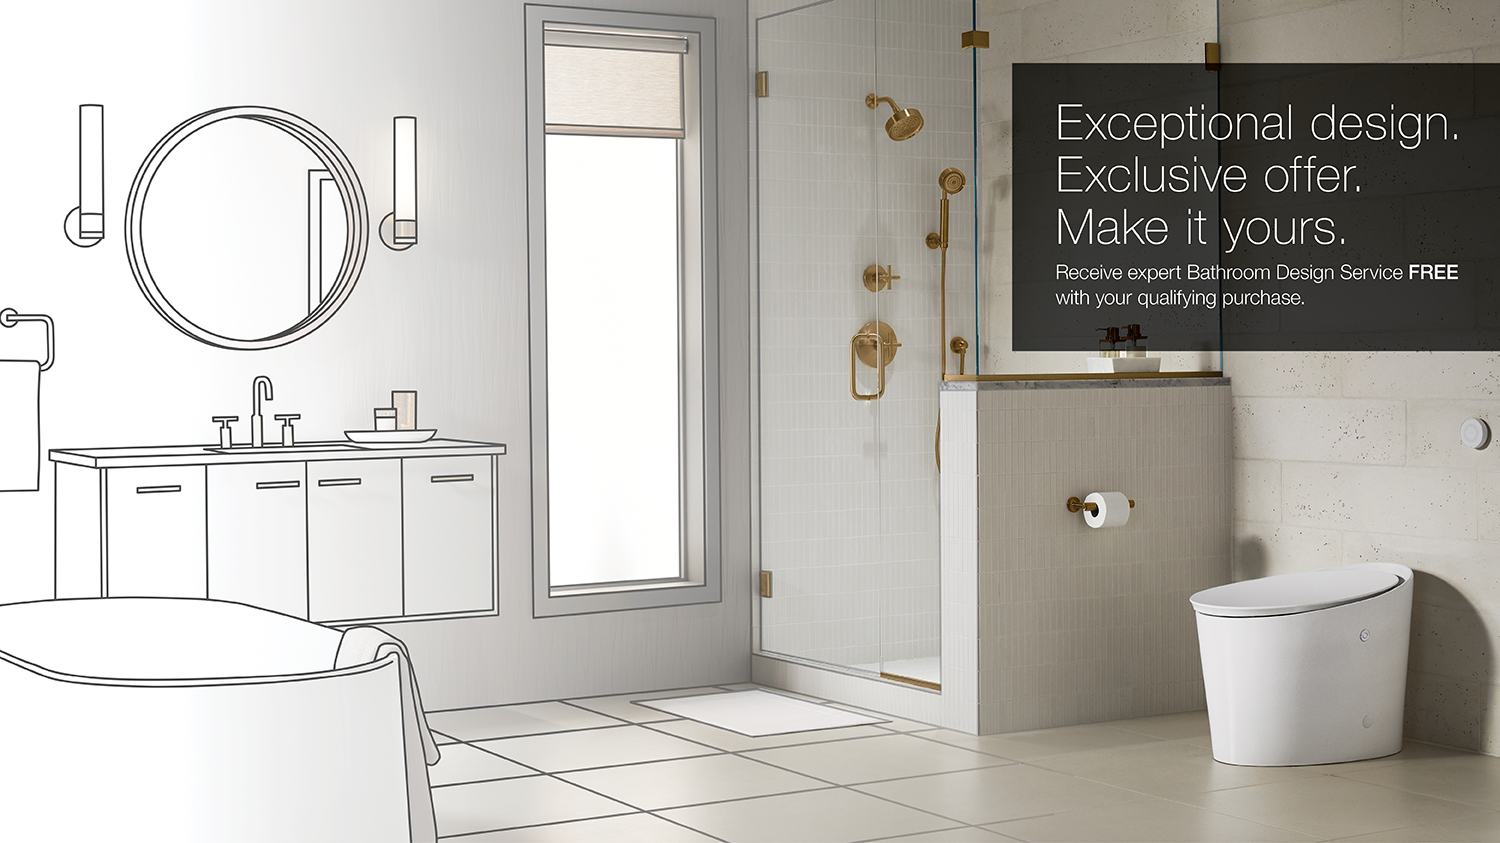 Kohler Bathroom Design Service Promotion